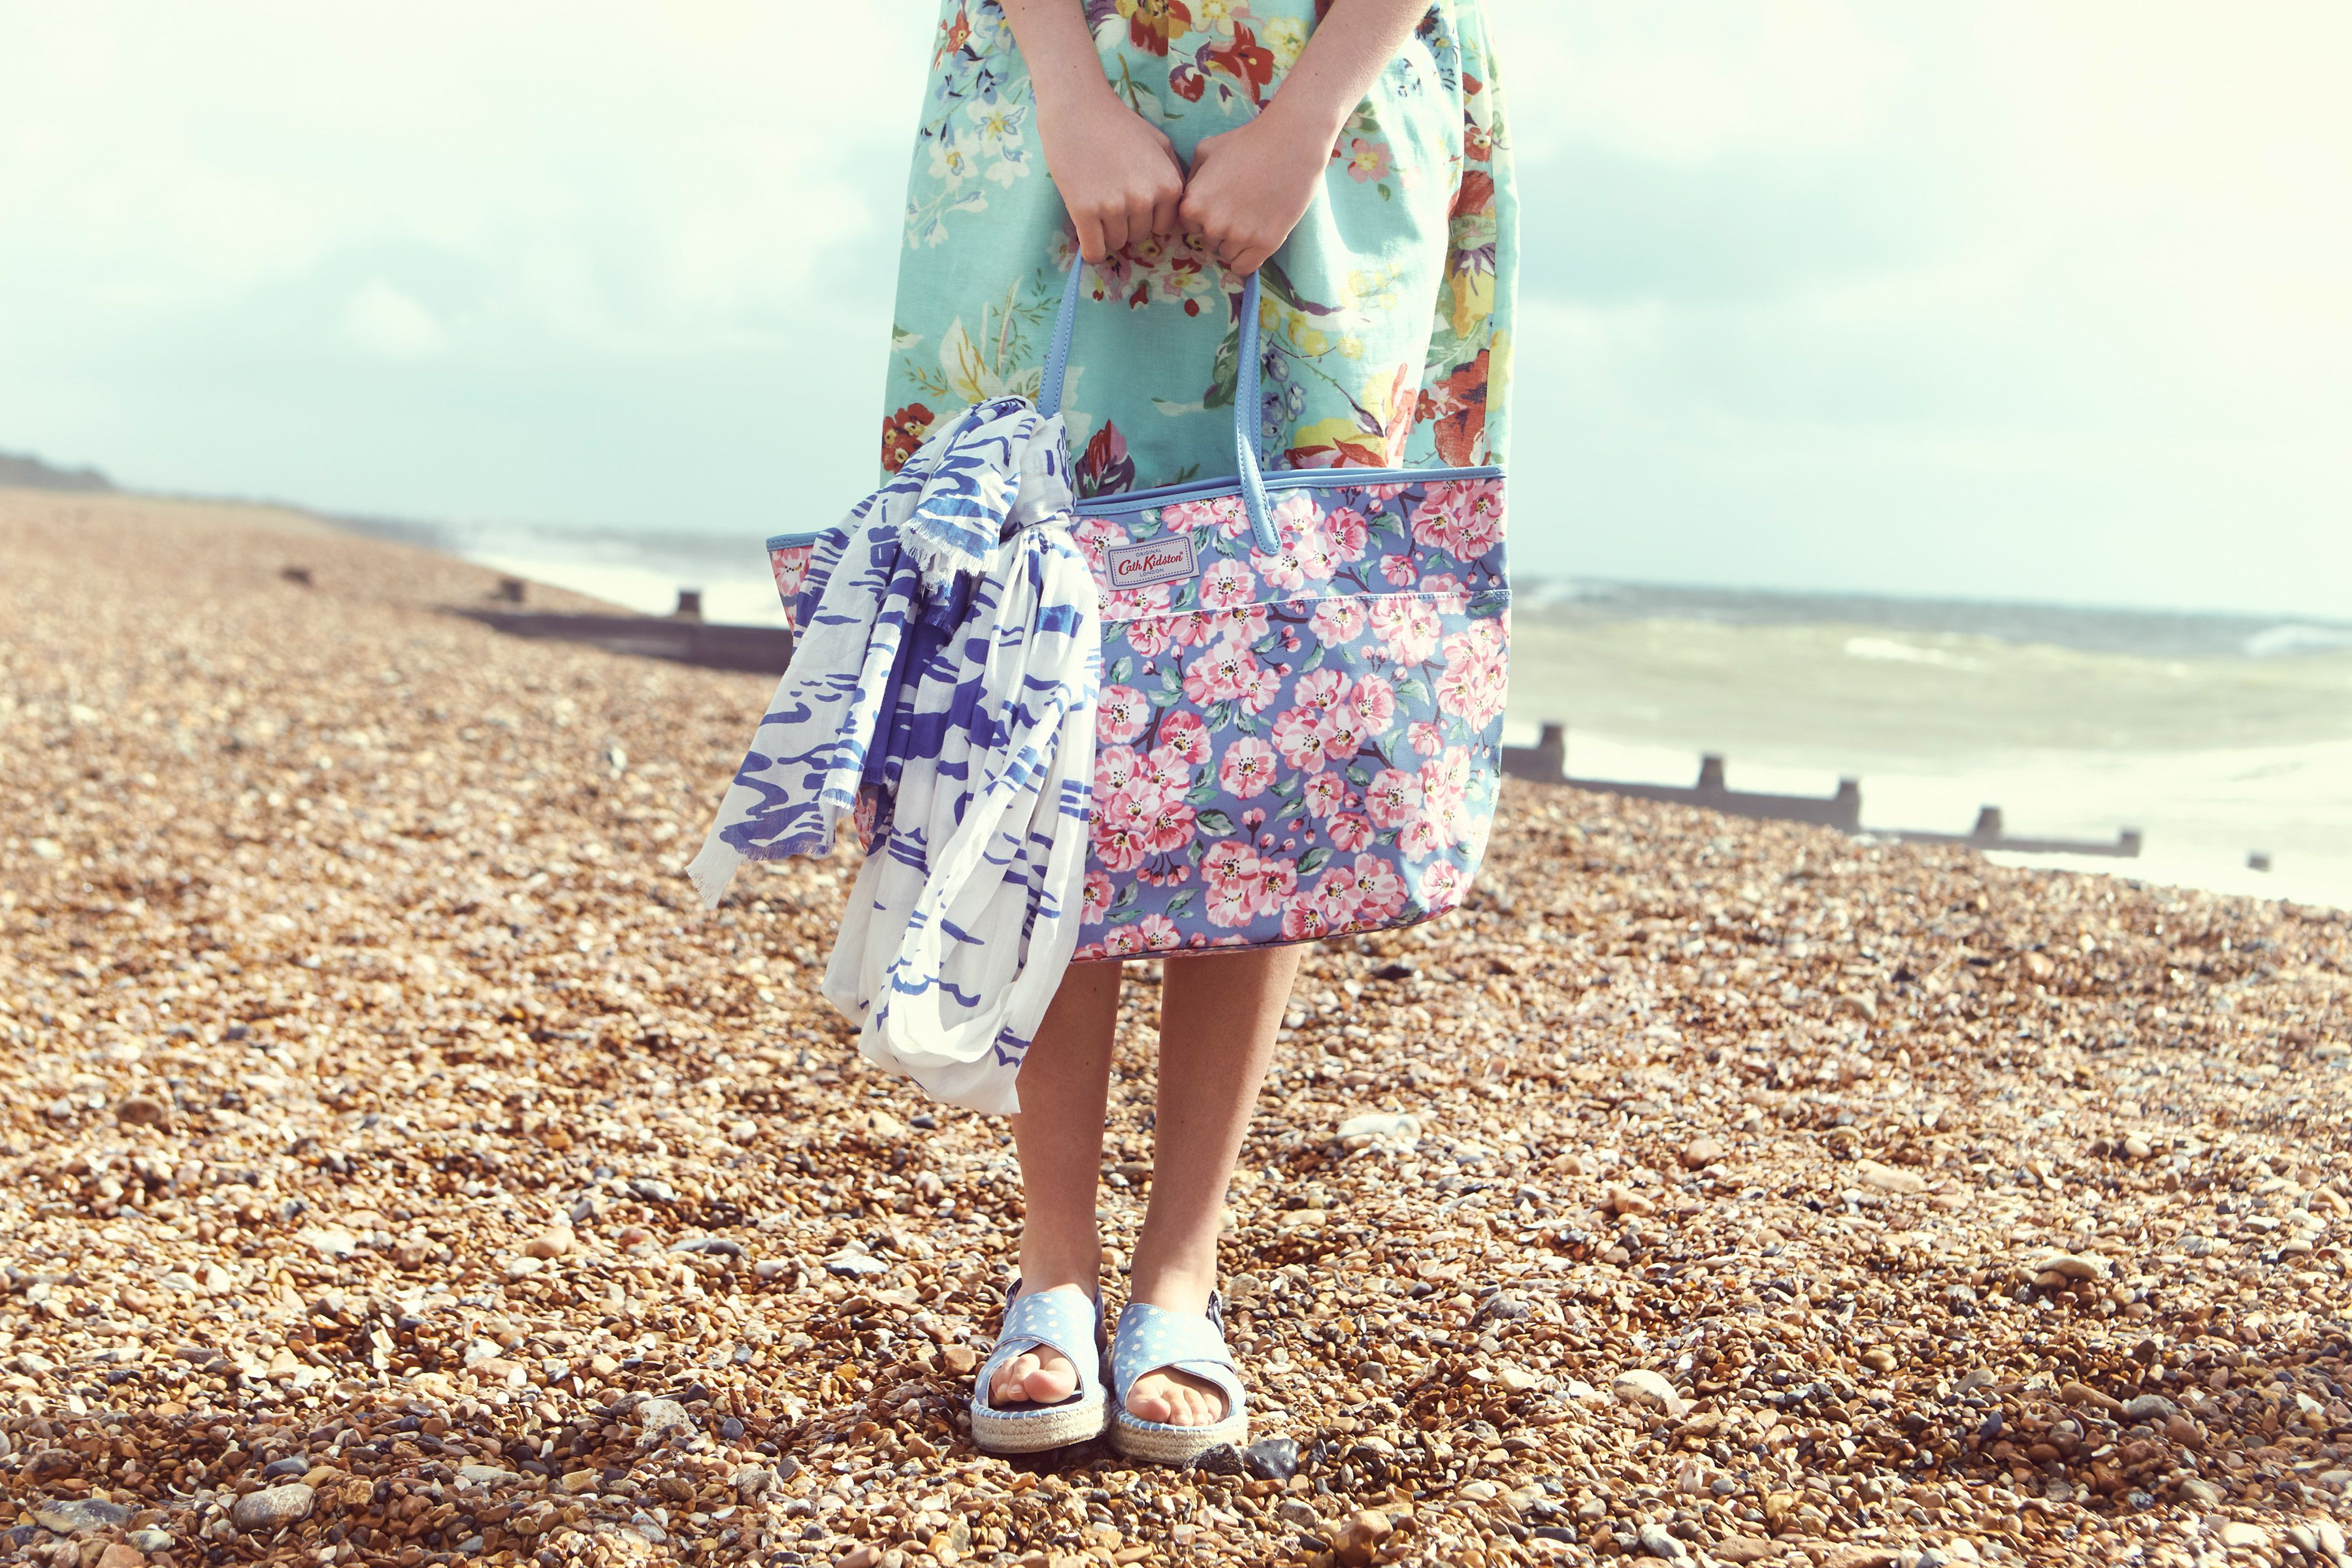 Blossom Bunch Large Trimmed Tote   Cath Kidston Spring Summer 2016  